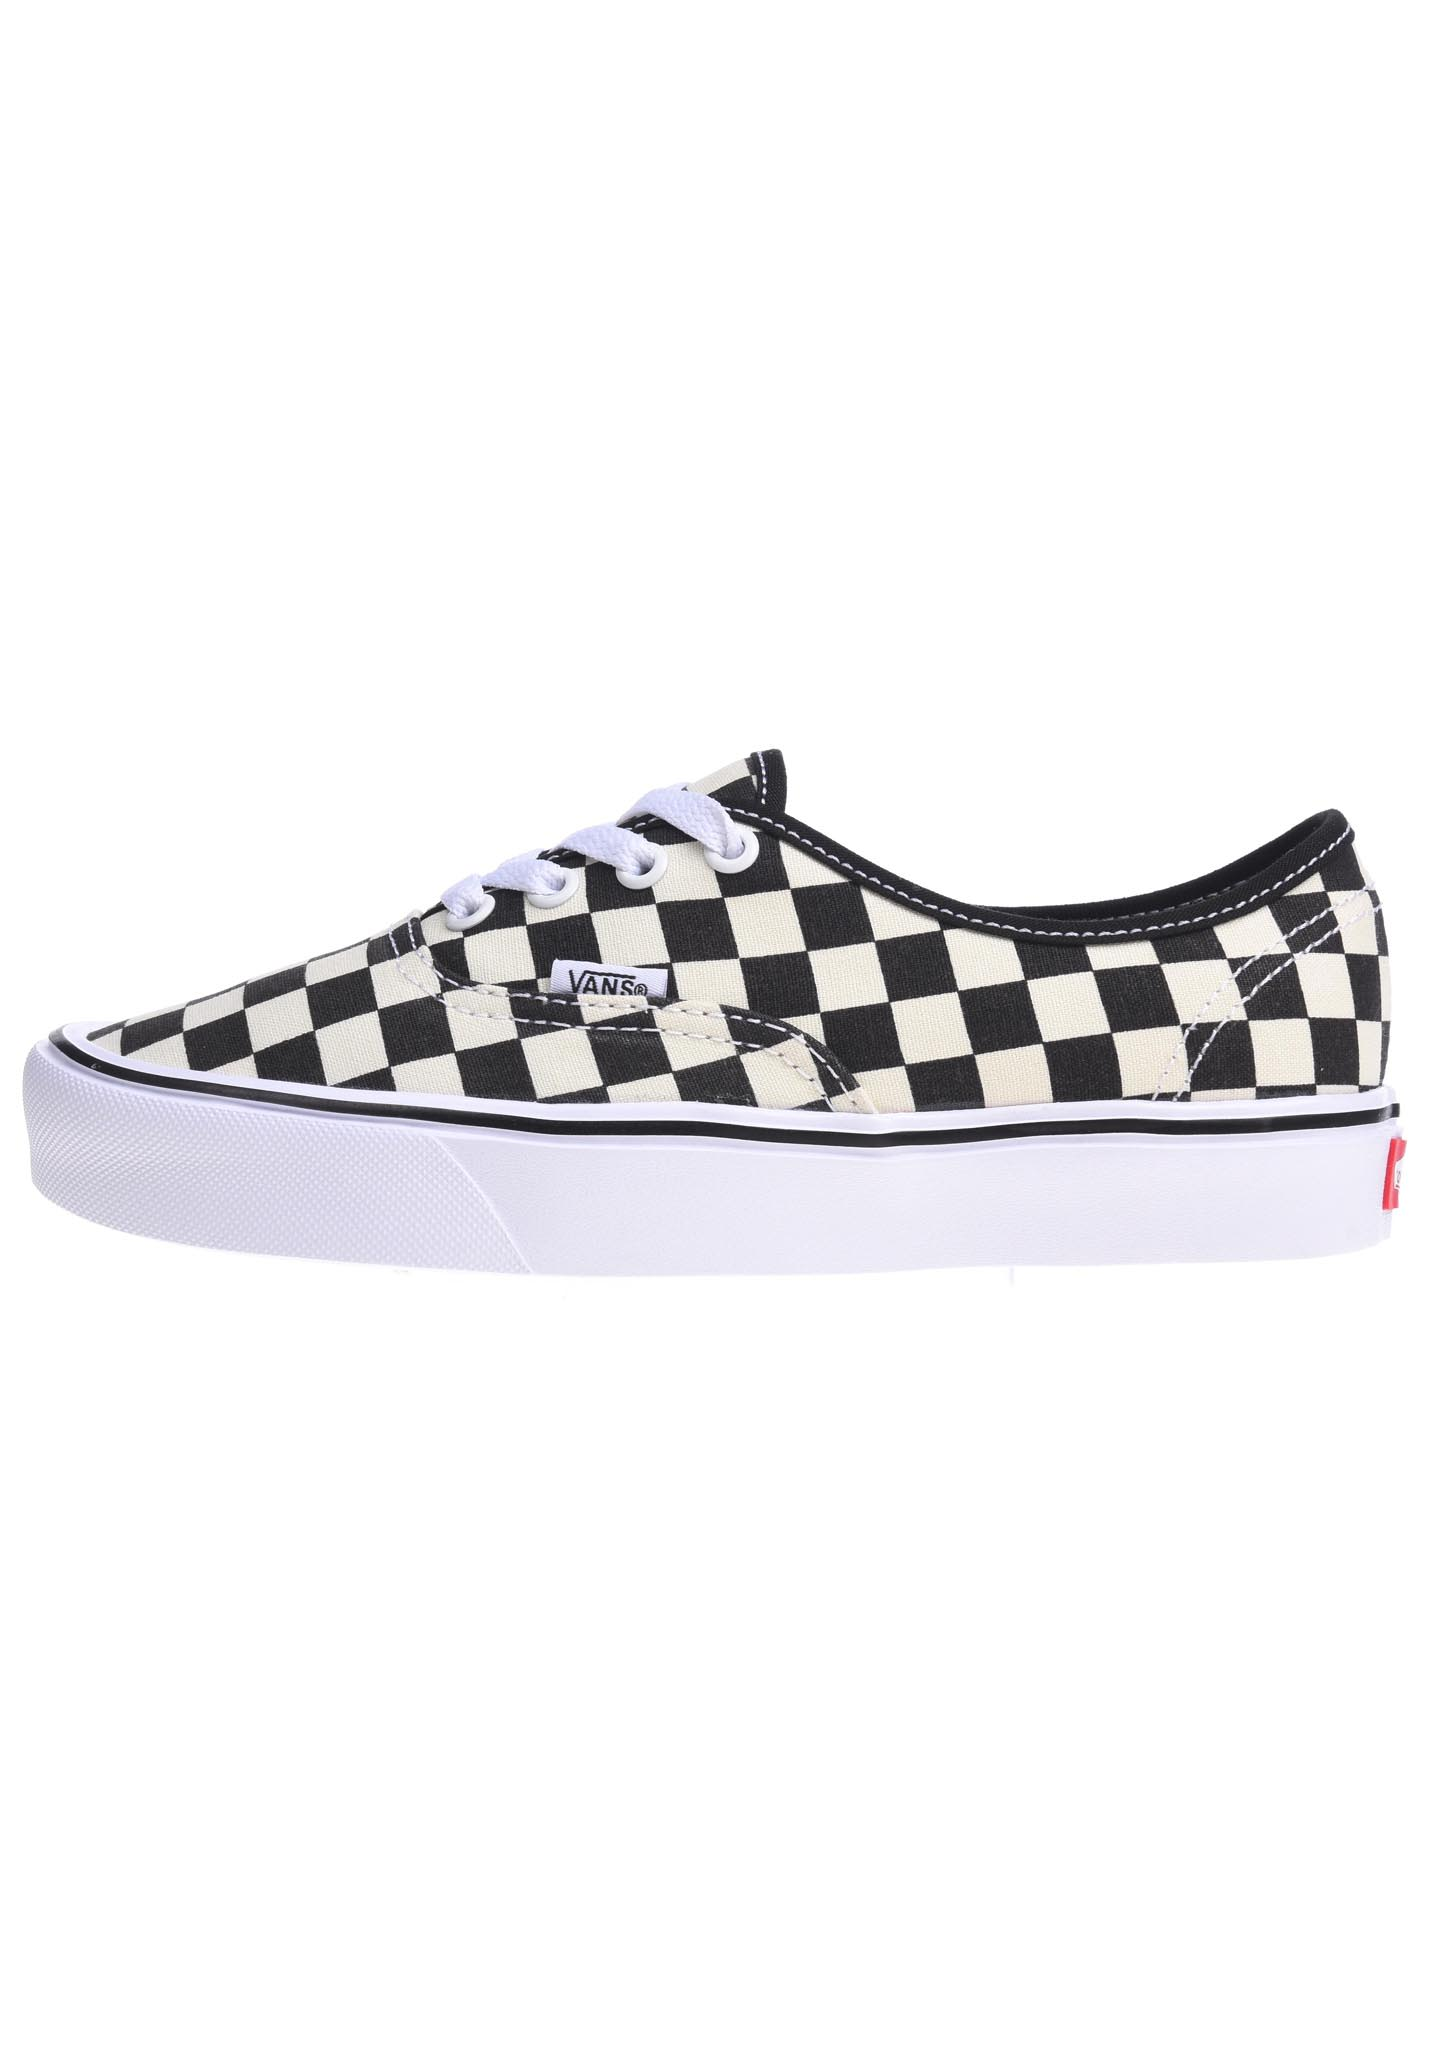 new style 0f2bf 867b9 Vans Authentic Lite - Sneakers - Black